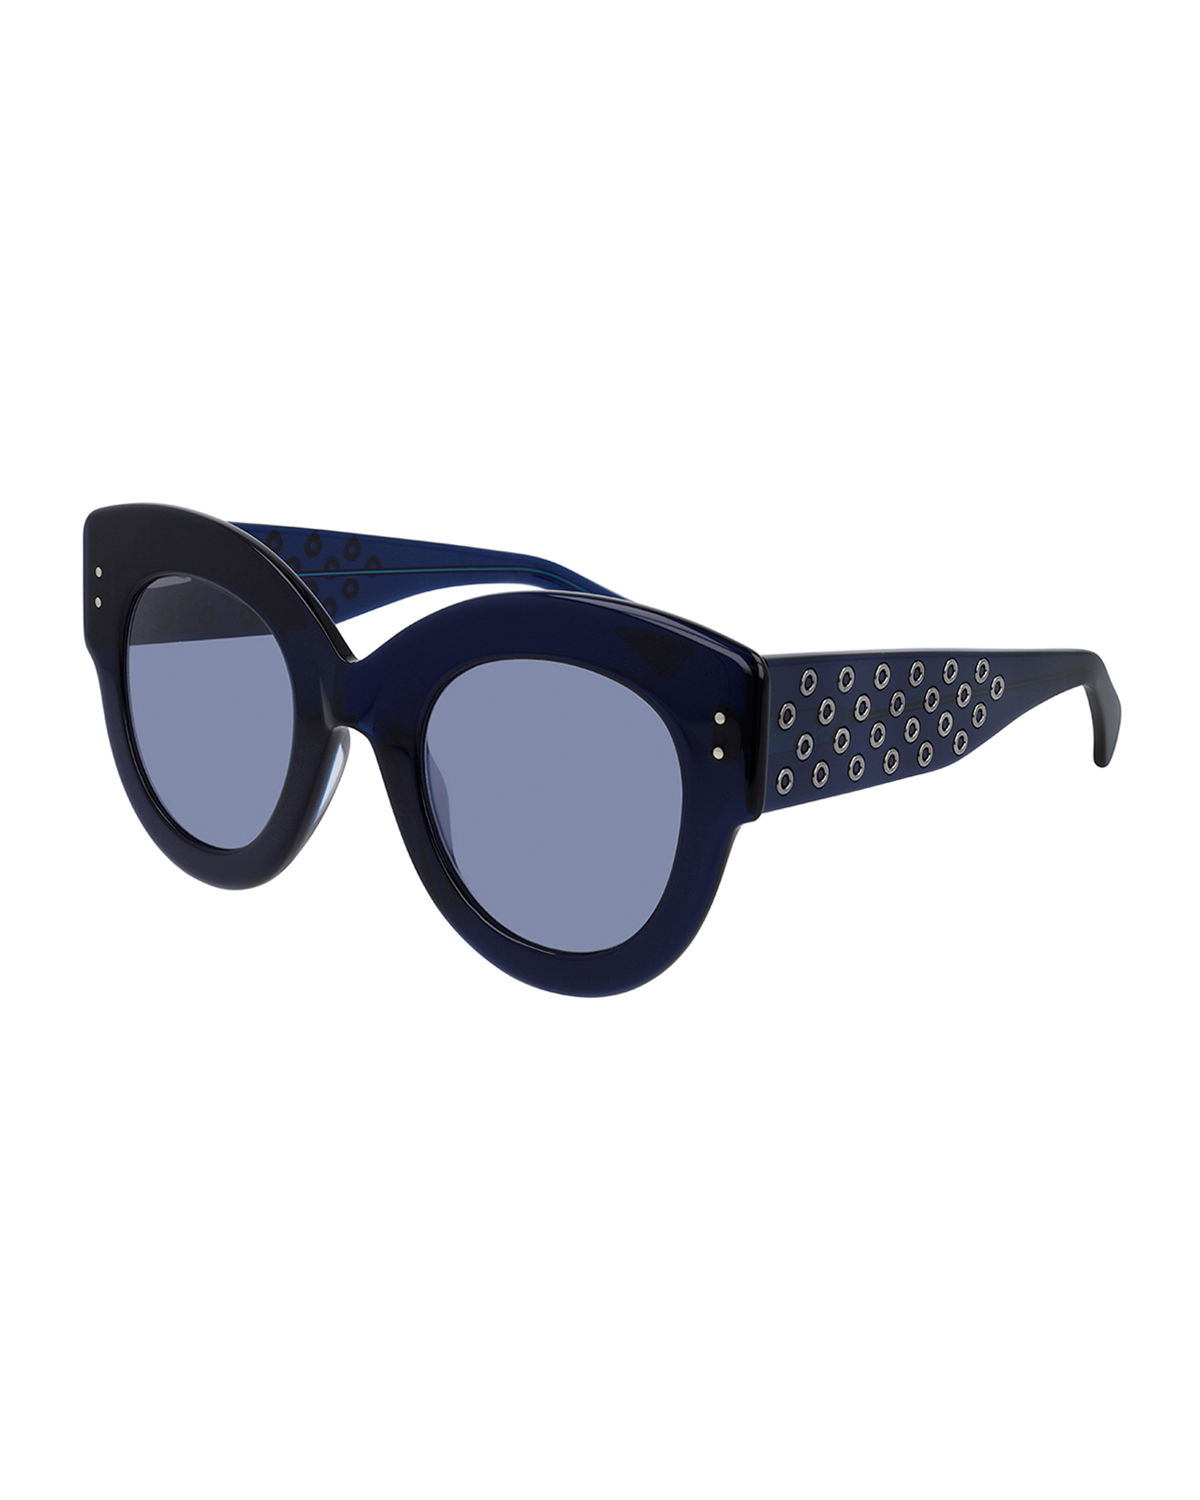 Alaïa Sunglasses ROUND STUDDED ACETATE SUNGLASSES